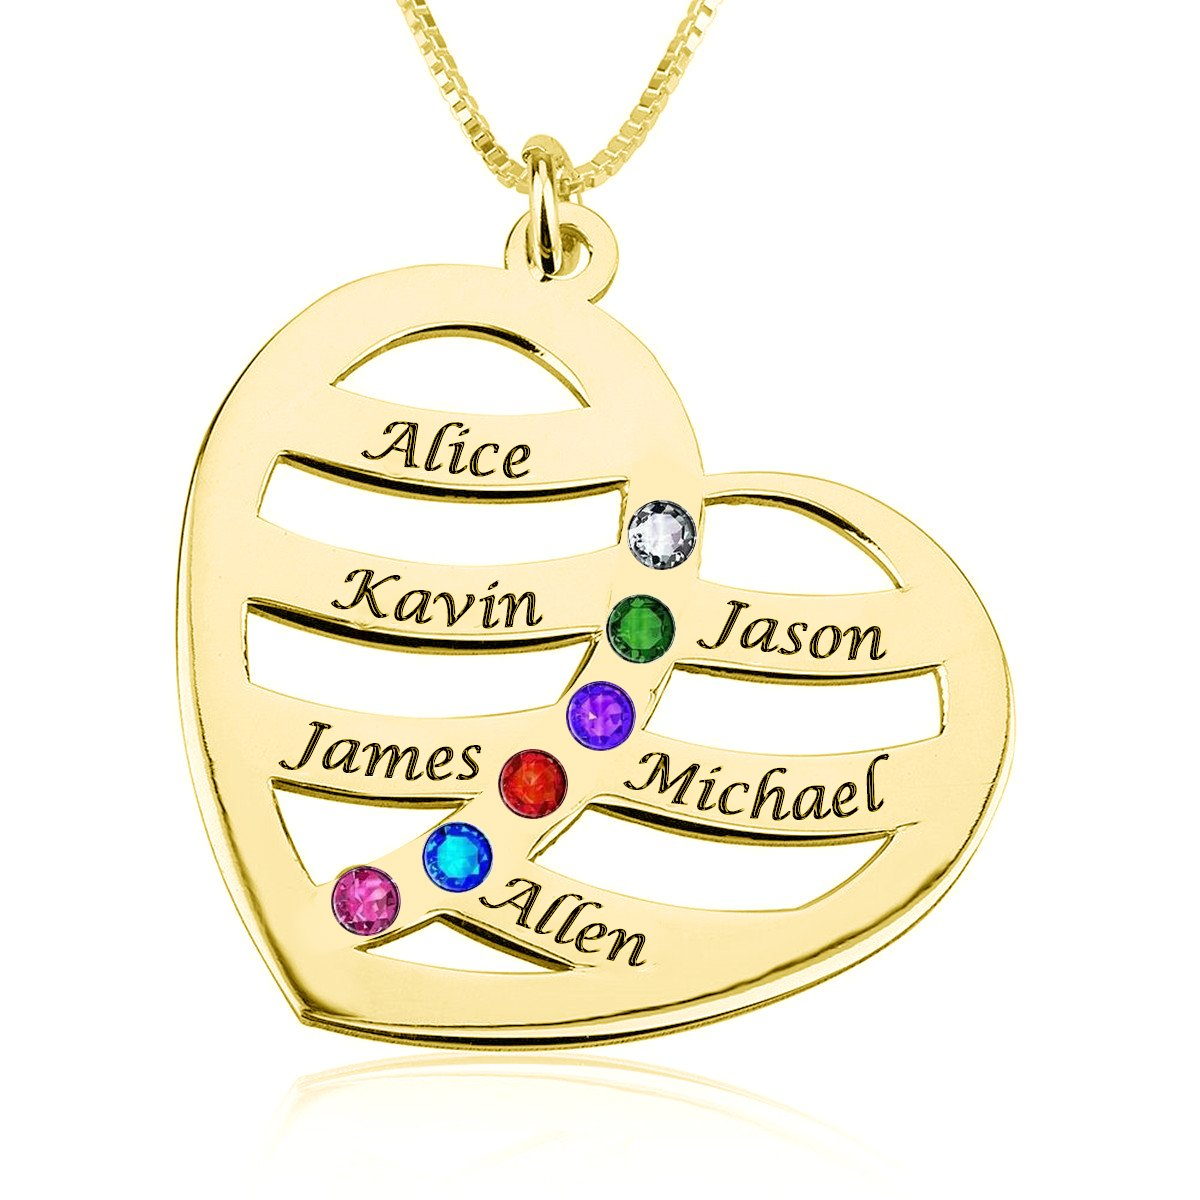 Ouslier 925 Sterling Silver Personalized Heart Family Name Necklace with Birthstone Custom Made with Any Names